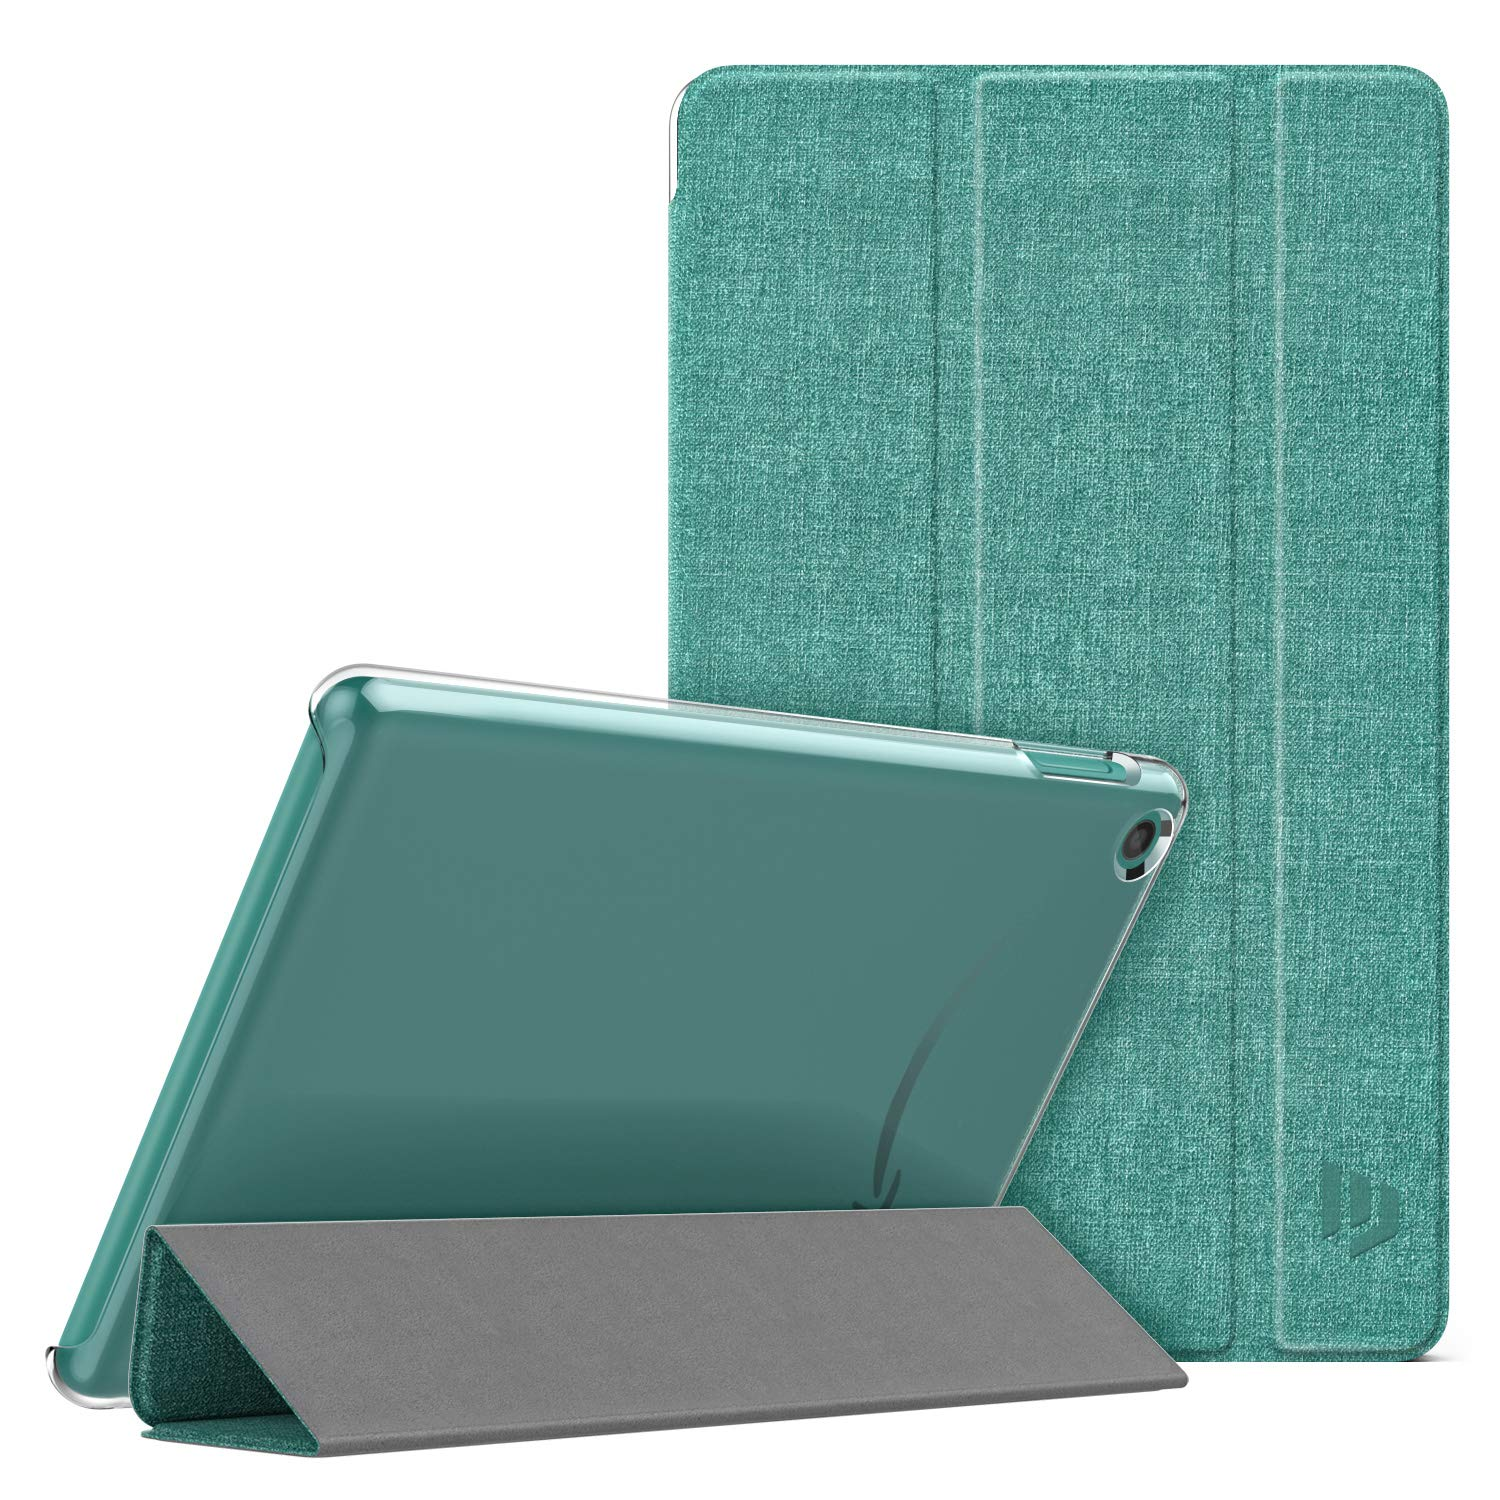 Dadanism Case Fit All New Amazon Kindle Fire 7 Tablet (9th Generation, 2019 Release), Translucent Pc Back Shell Ultra Slim Lightweight Trifold Stand Cover With Auto Sleep/Wake   Denim Sage by Dadanism